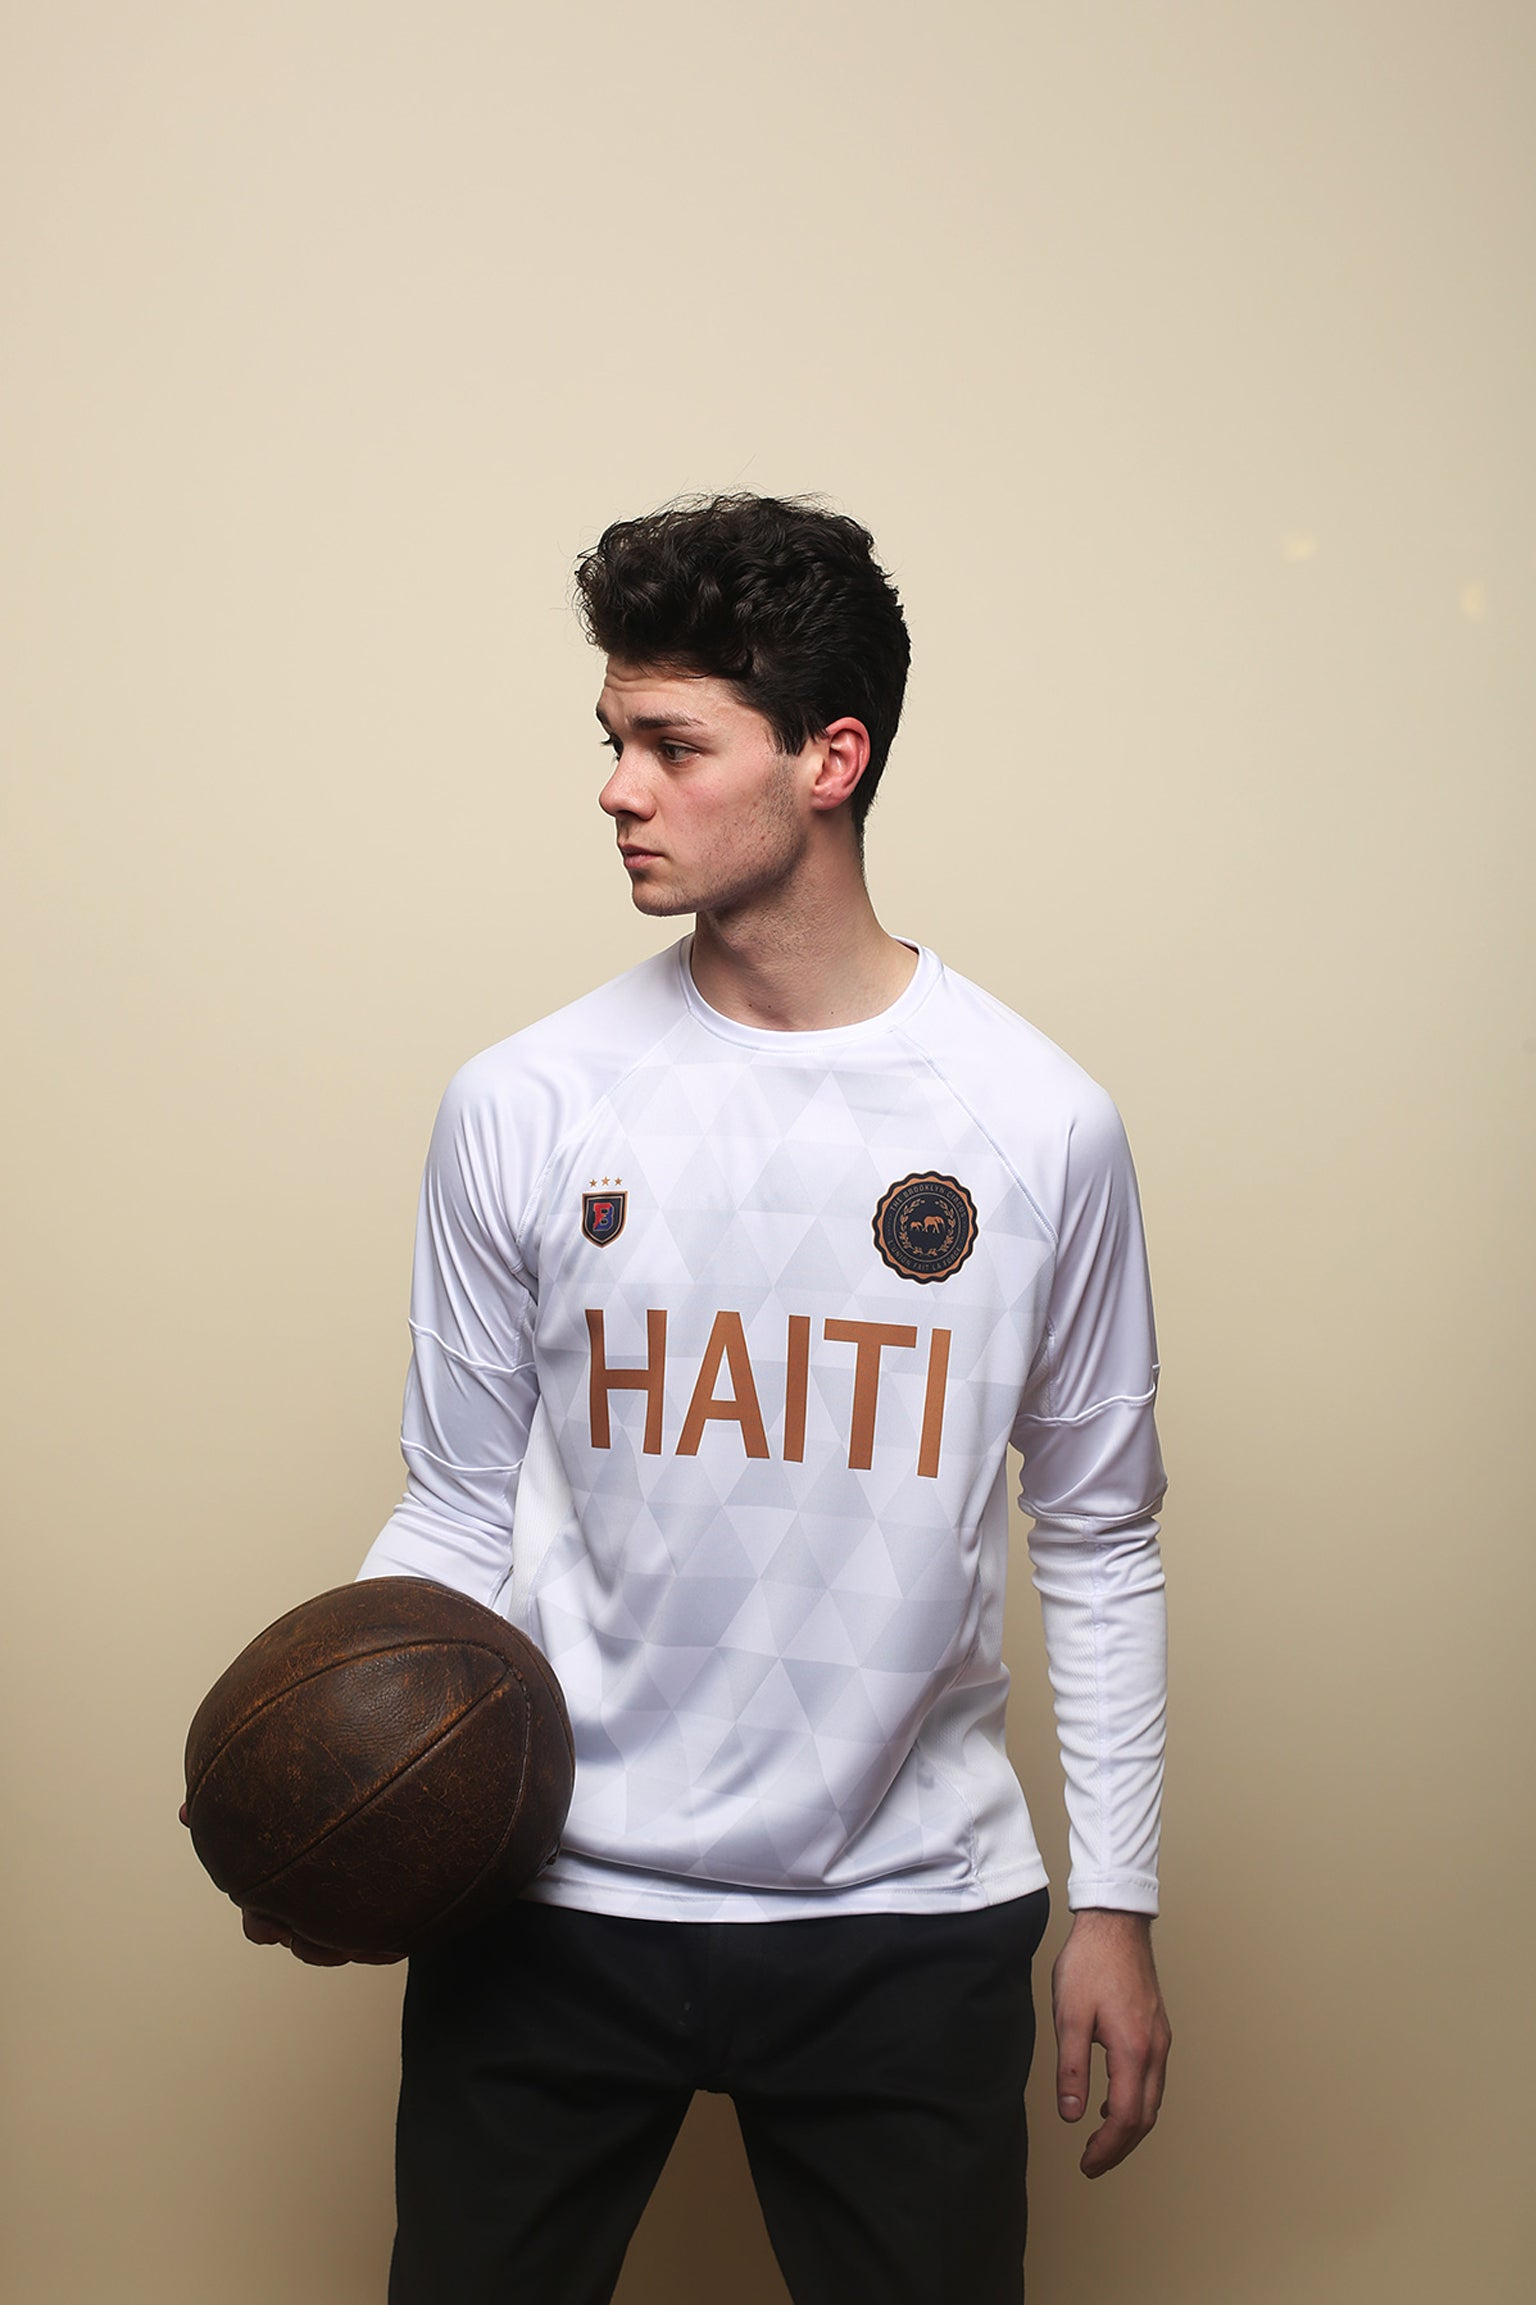 Haiti x BKc Kit White long Sleeve